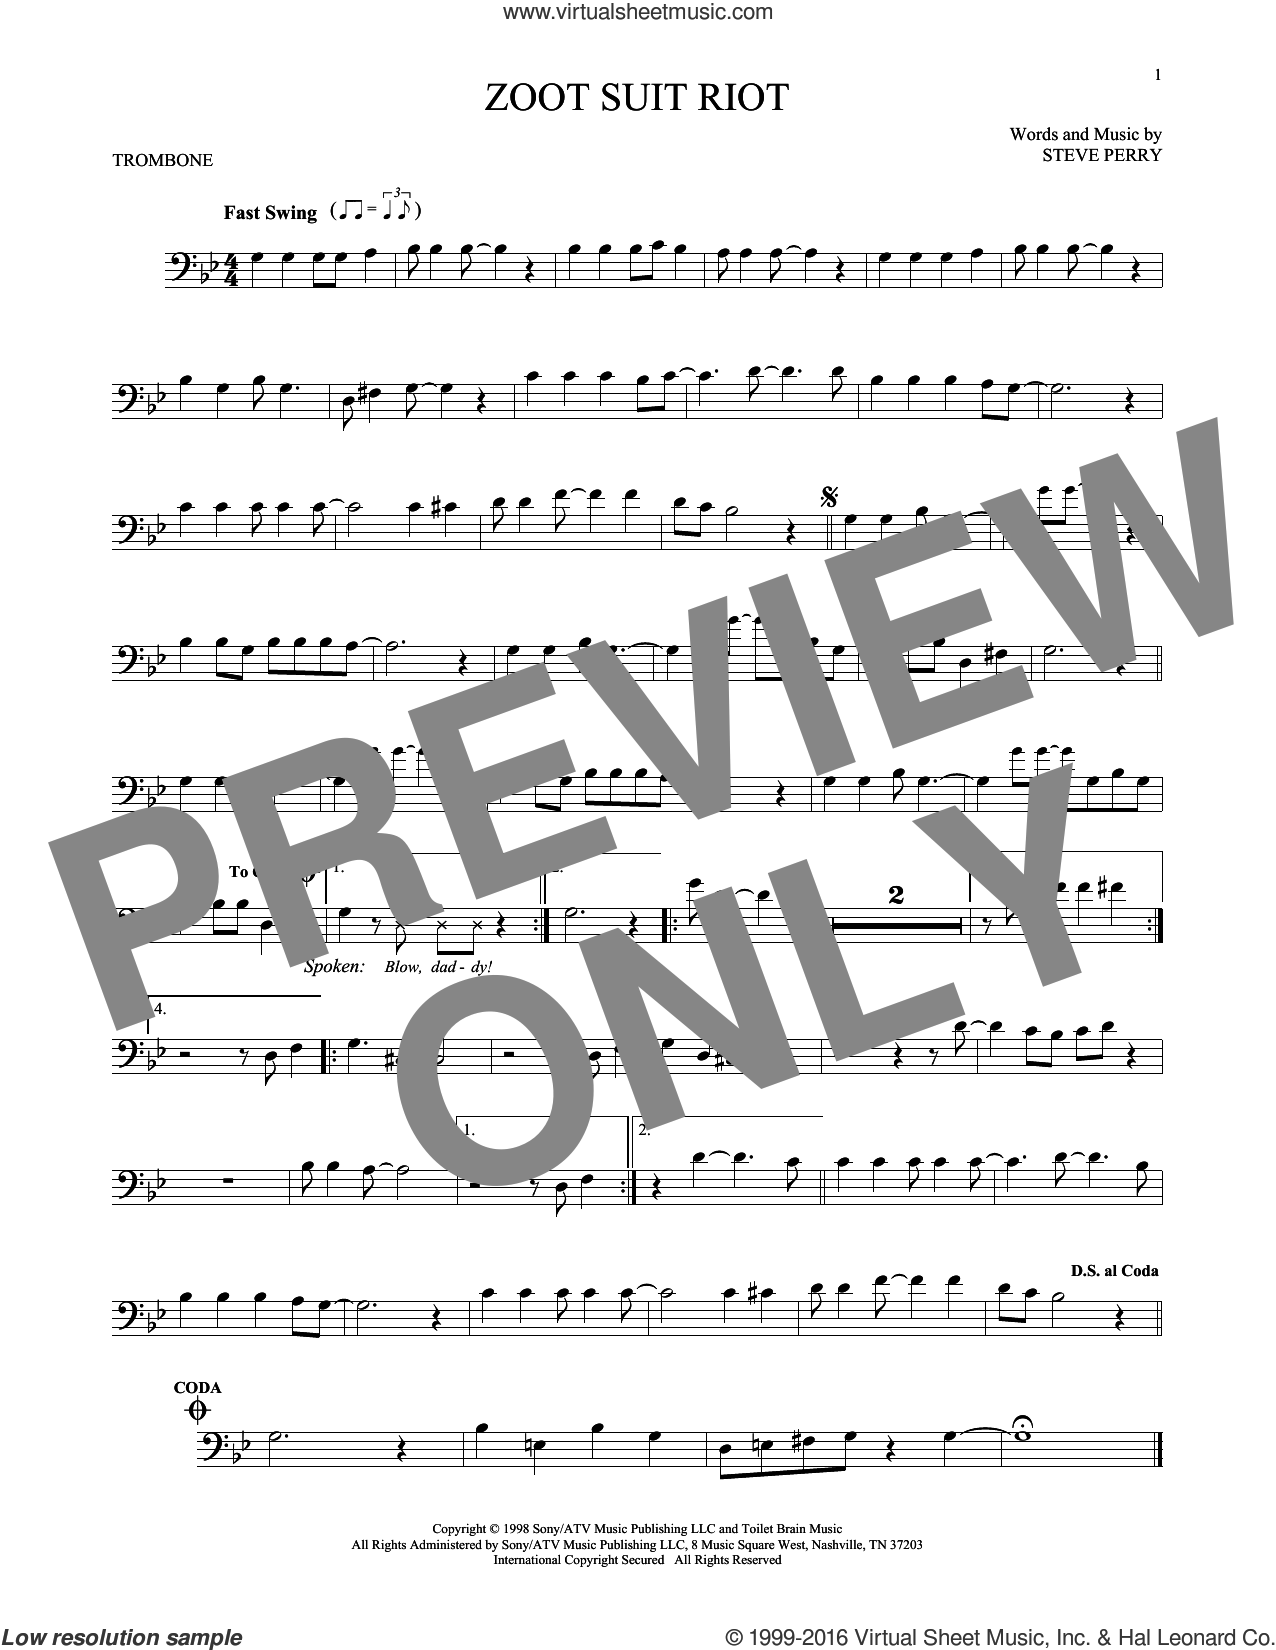 Zoot Suit Riot sheet music for trombone solo by Steve Perry. Score Image Preview.